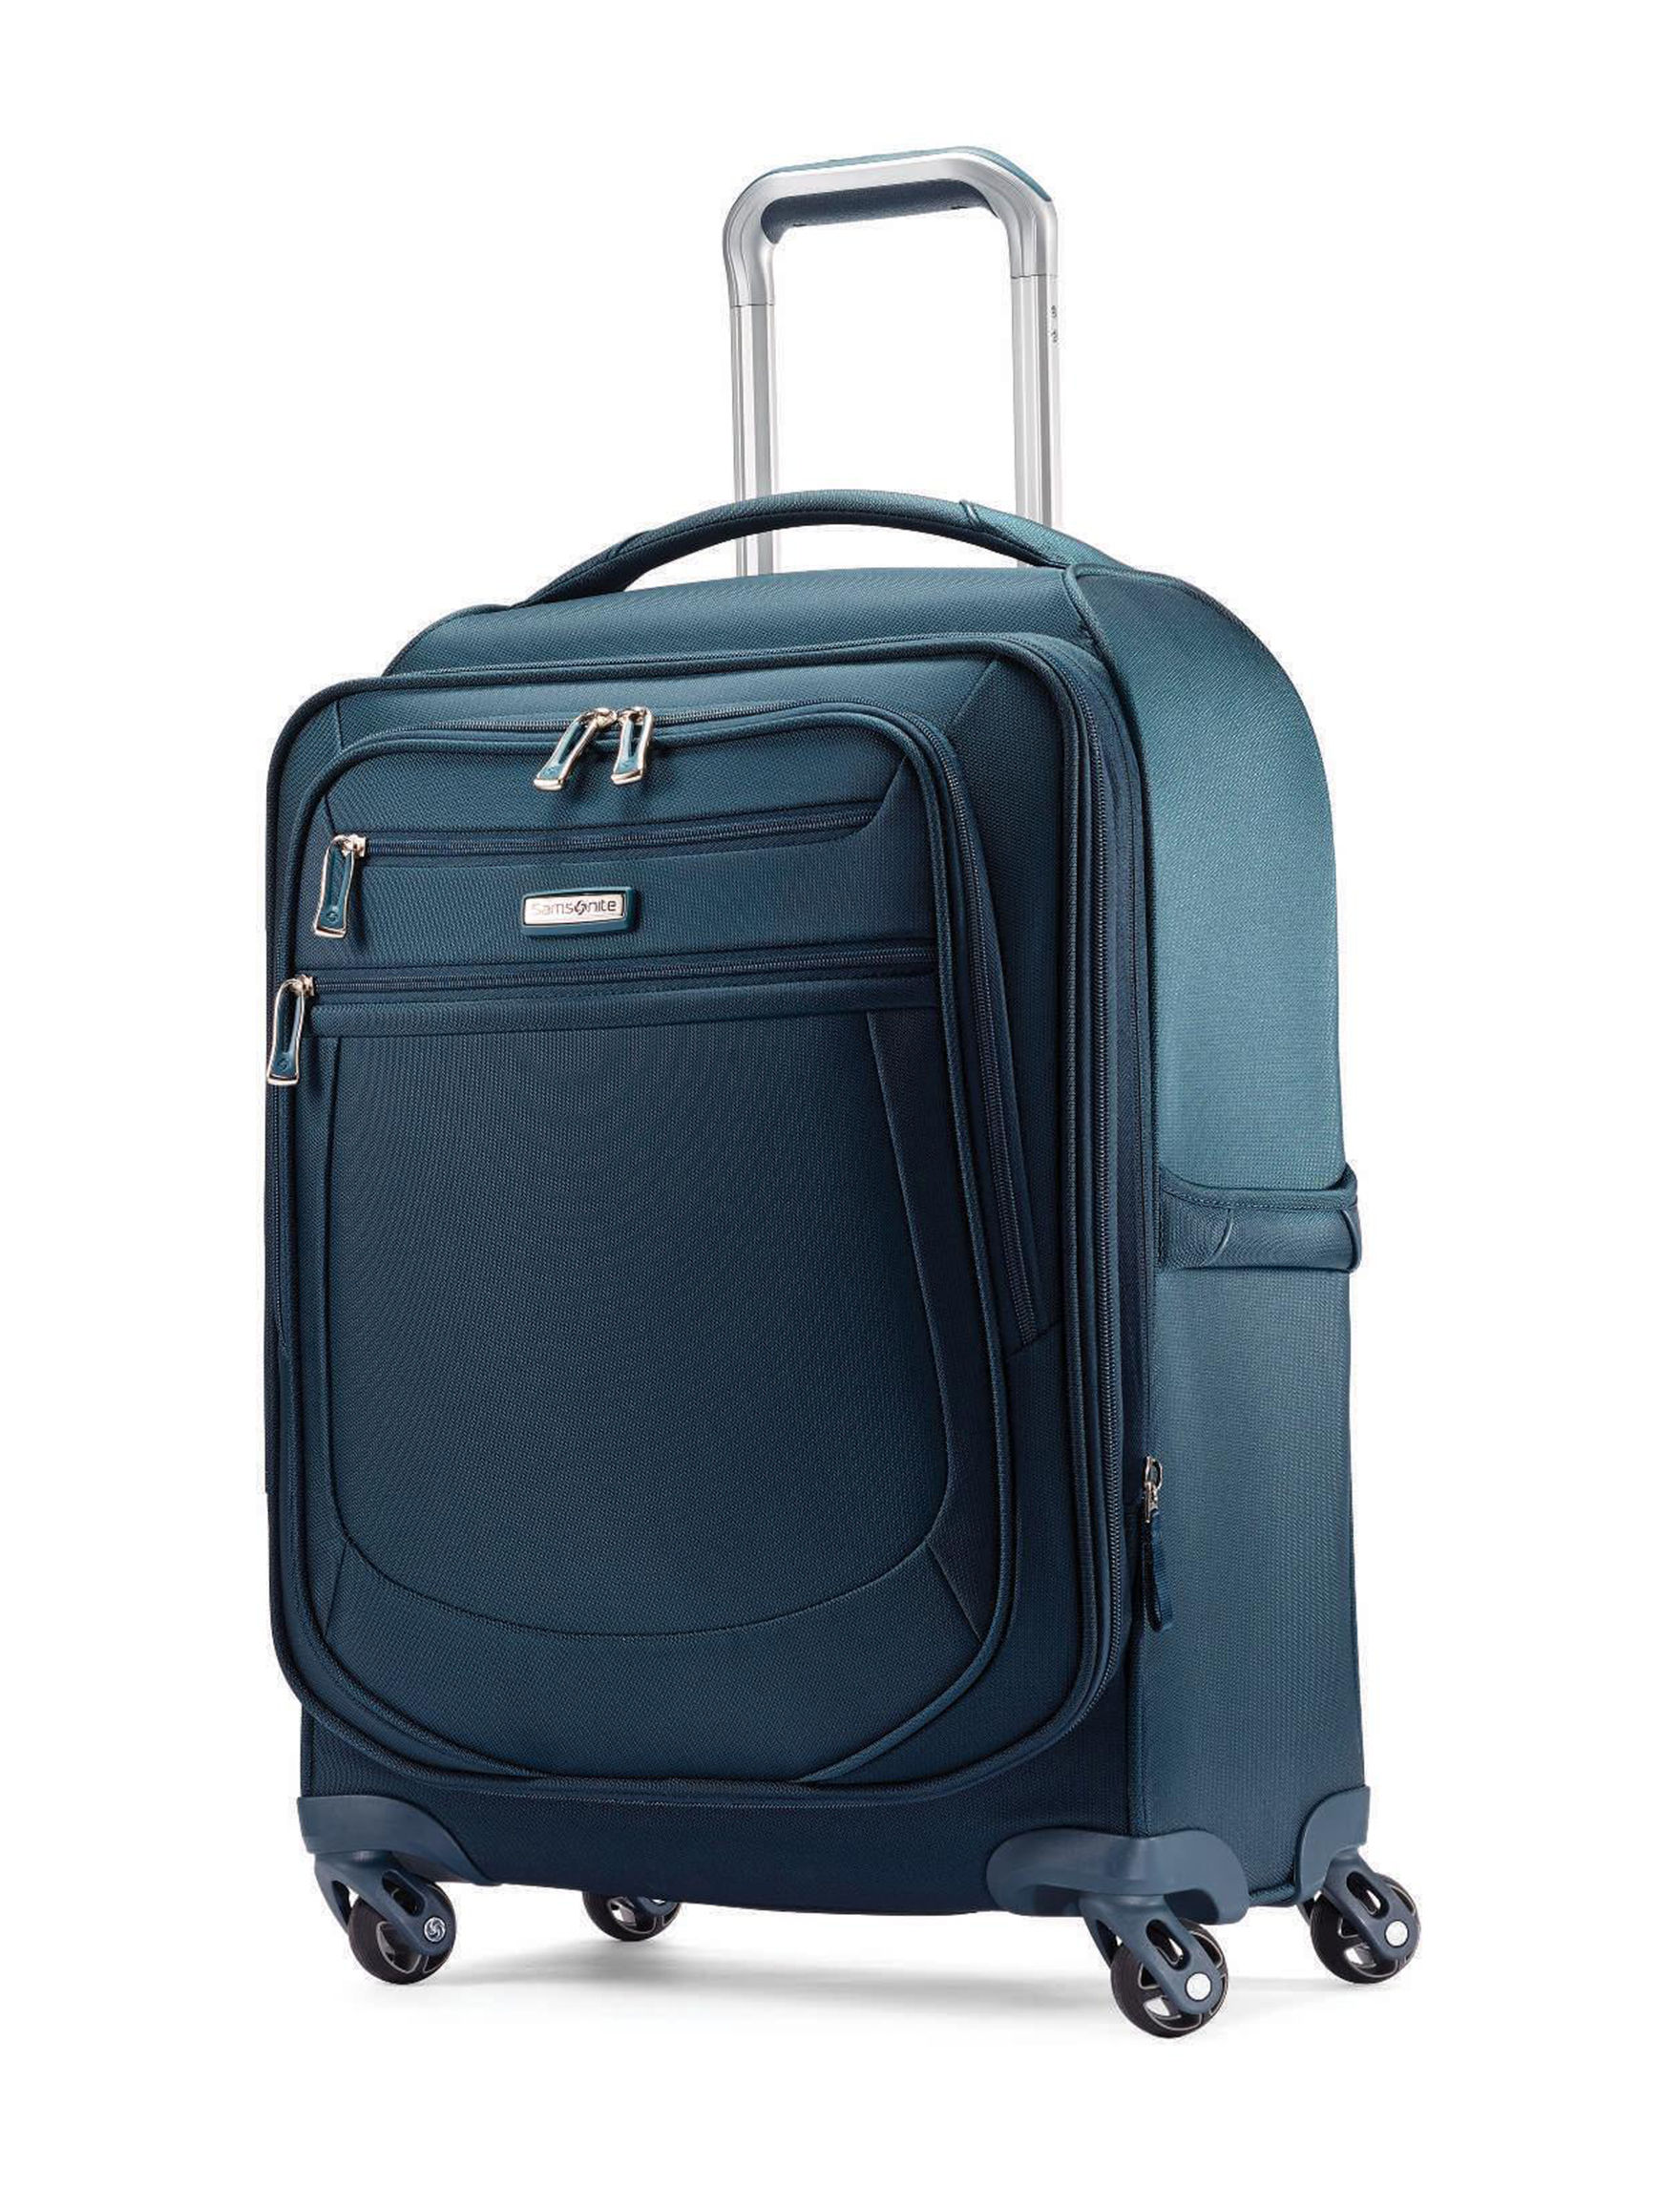 Samsonite Blue Upright Spinners